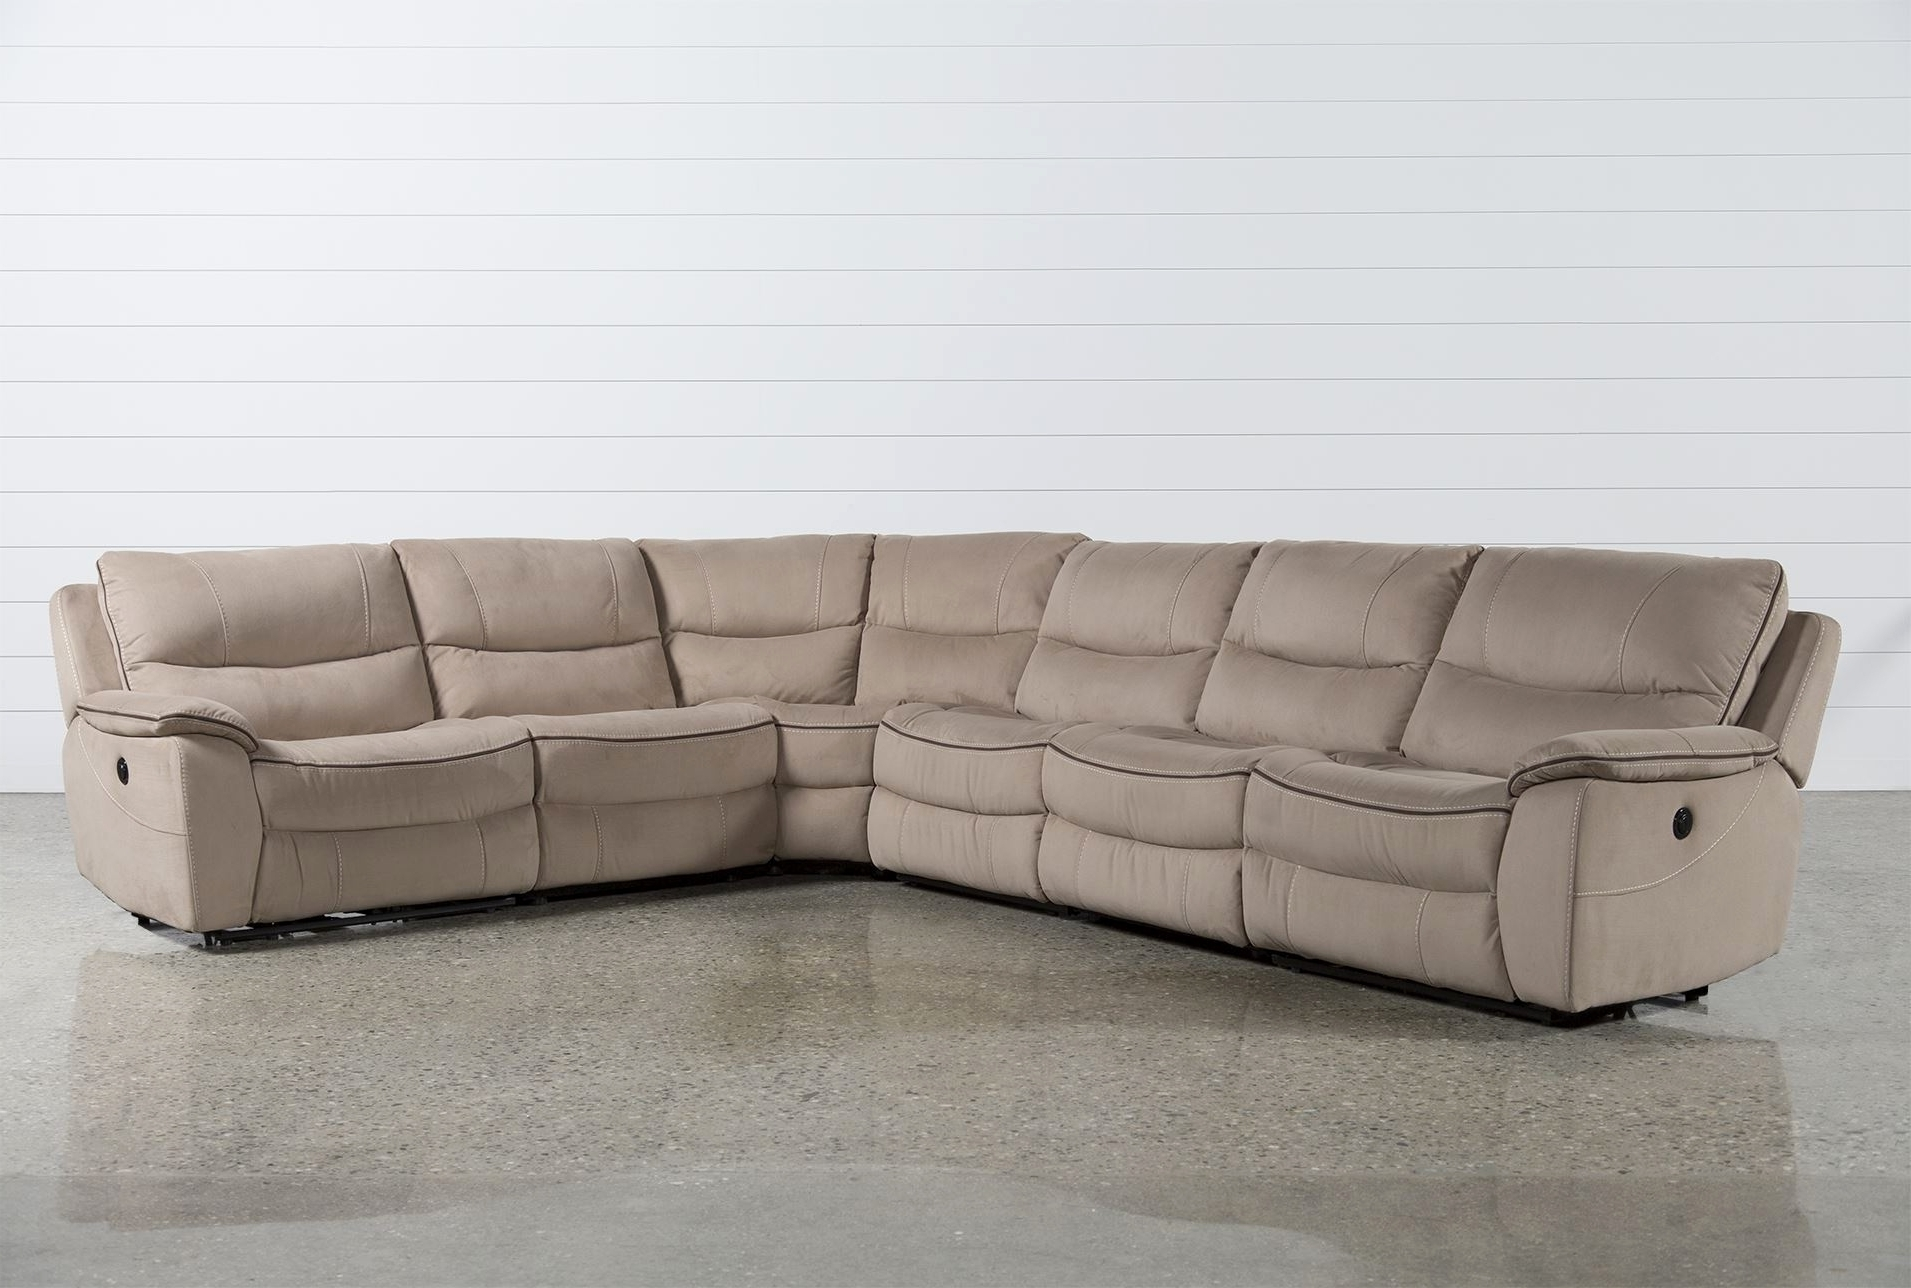 Luxury 6 Piece Sectional Sofa 2018 – Couches Ideas For Famous Sam Levitz Sectional Sofas (View 12 of 20)